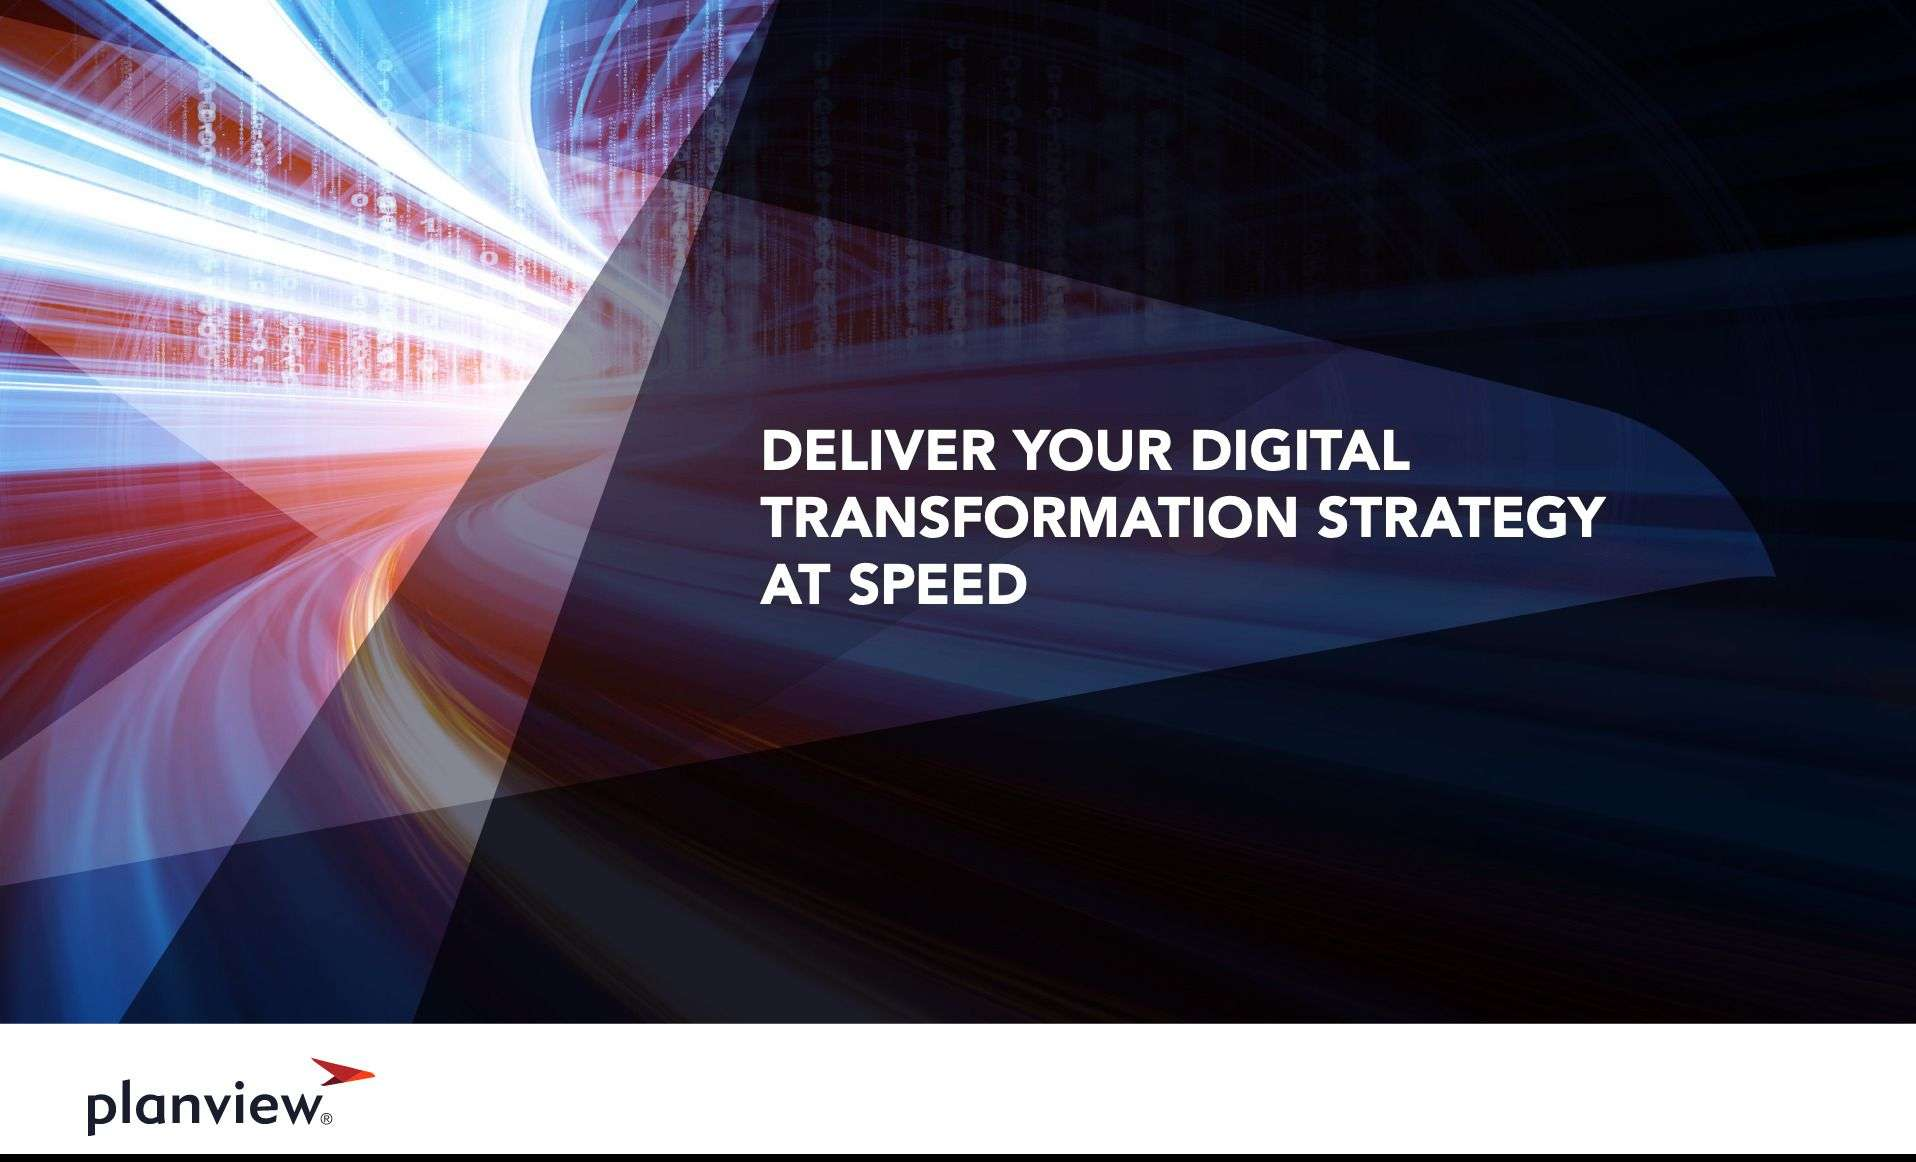 Screenshot 2020 11 06 Planview eBook – Deliver Your Digital Transformation Strategy at Speed PorterQuinn ENT NER PRM ENG ... - DELIVER DIGITAL TRANSFORMATION AT SPEED